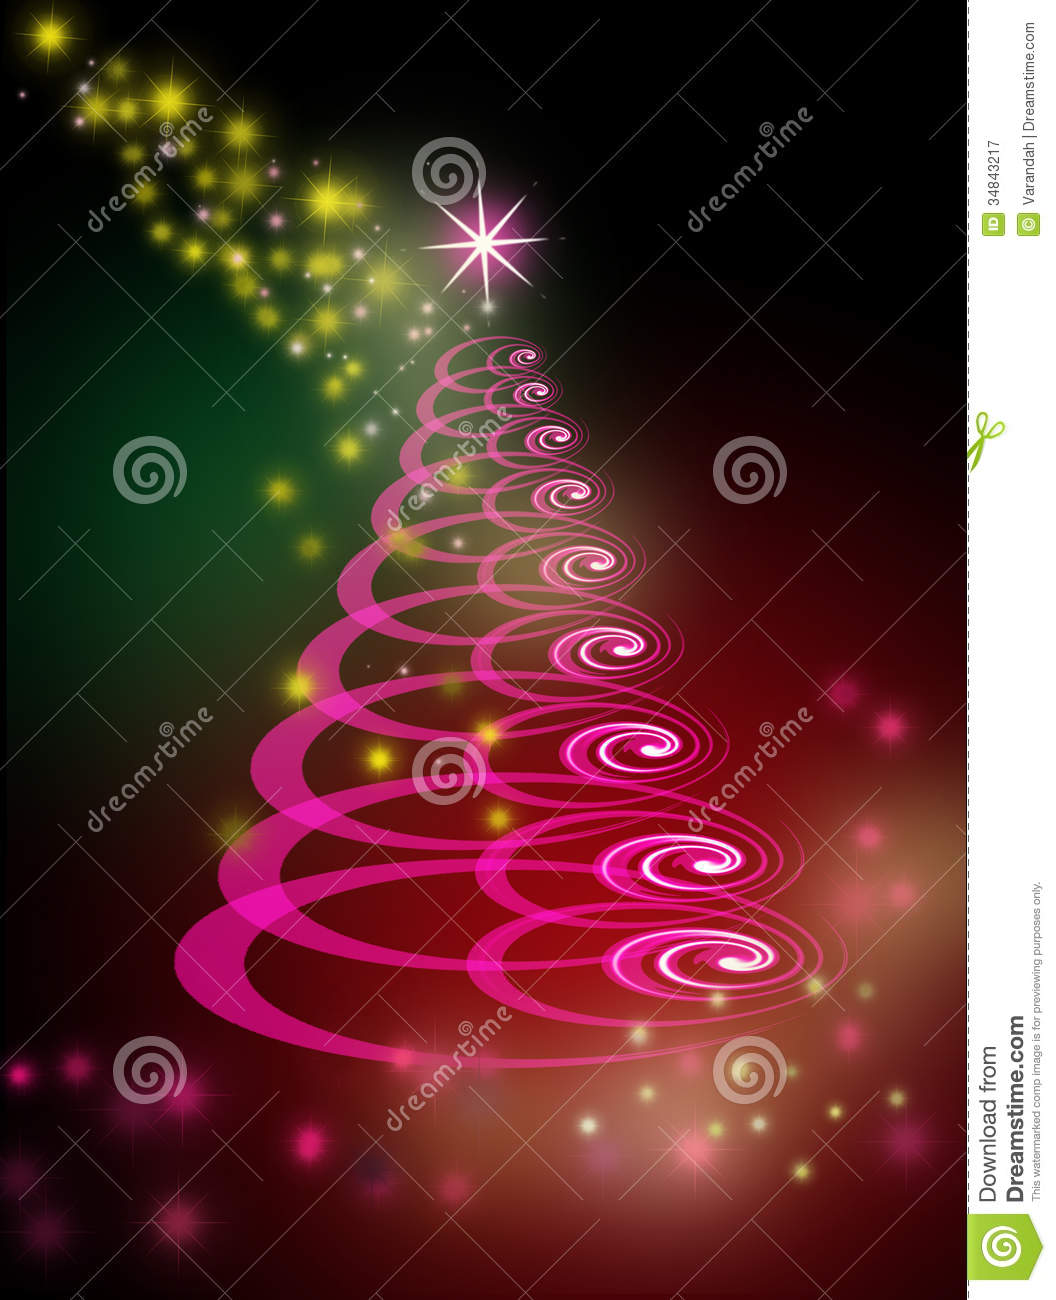 Christmas tree on glowing green and pink background royalty free stock